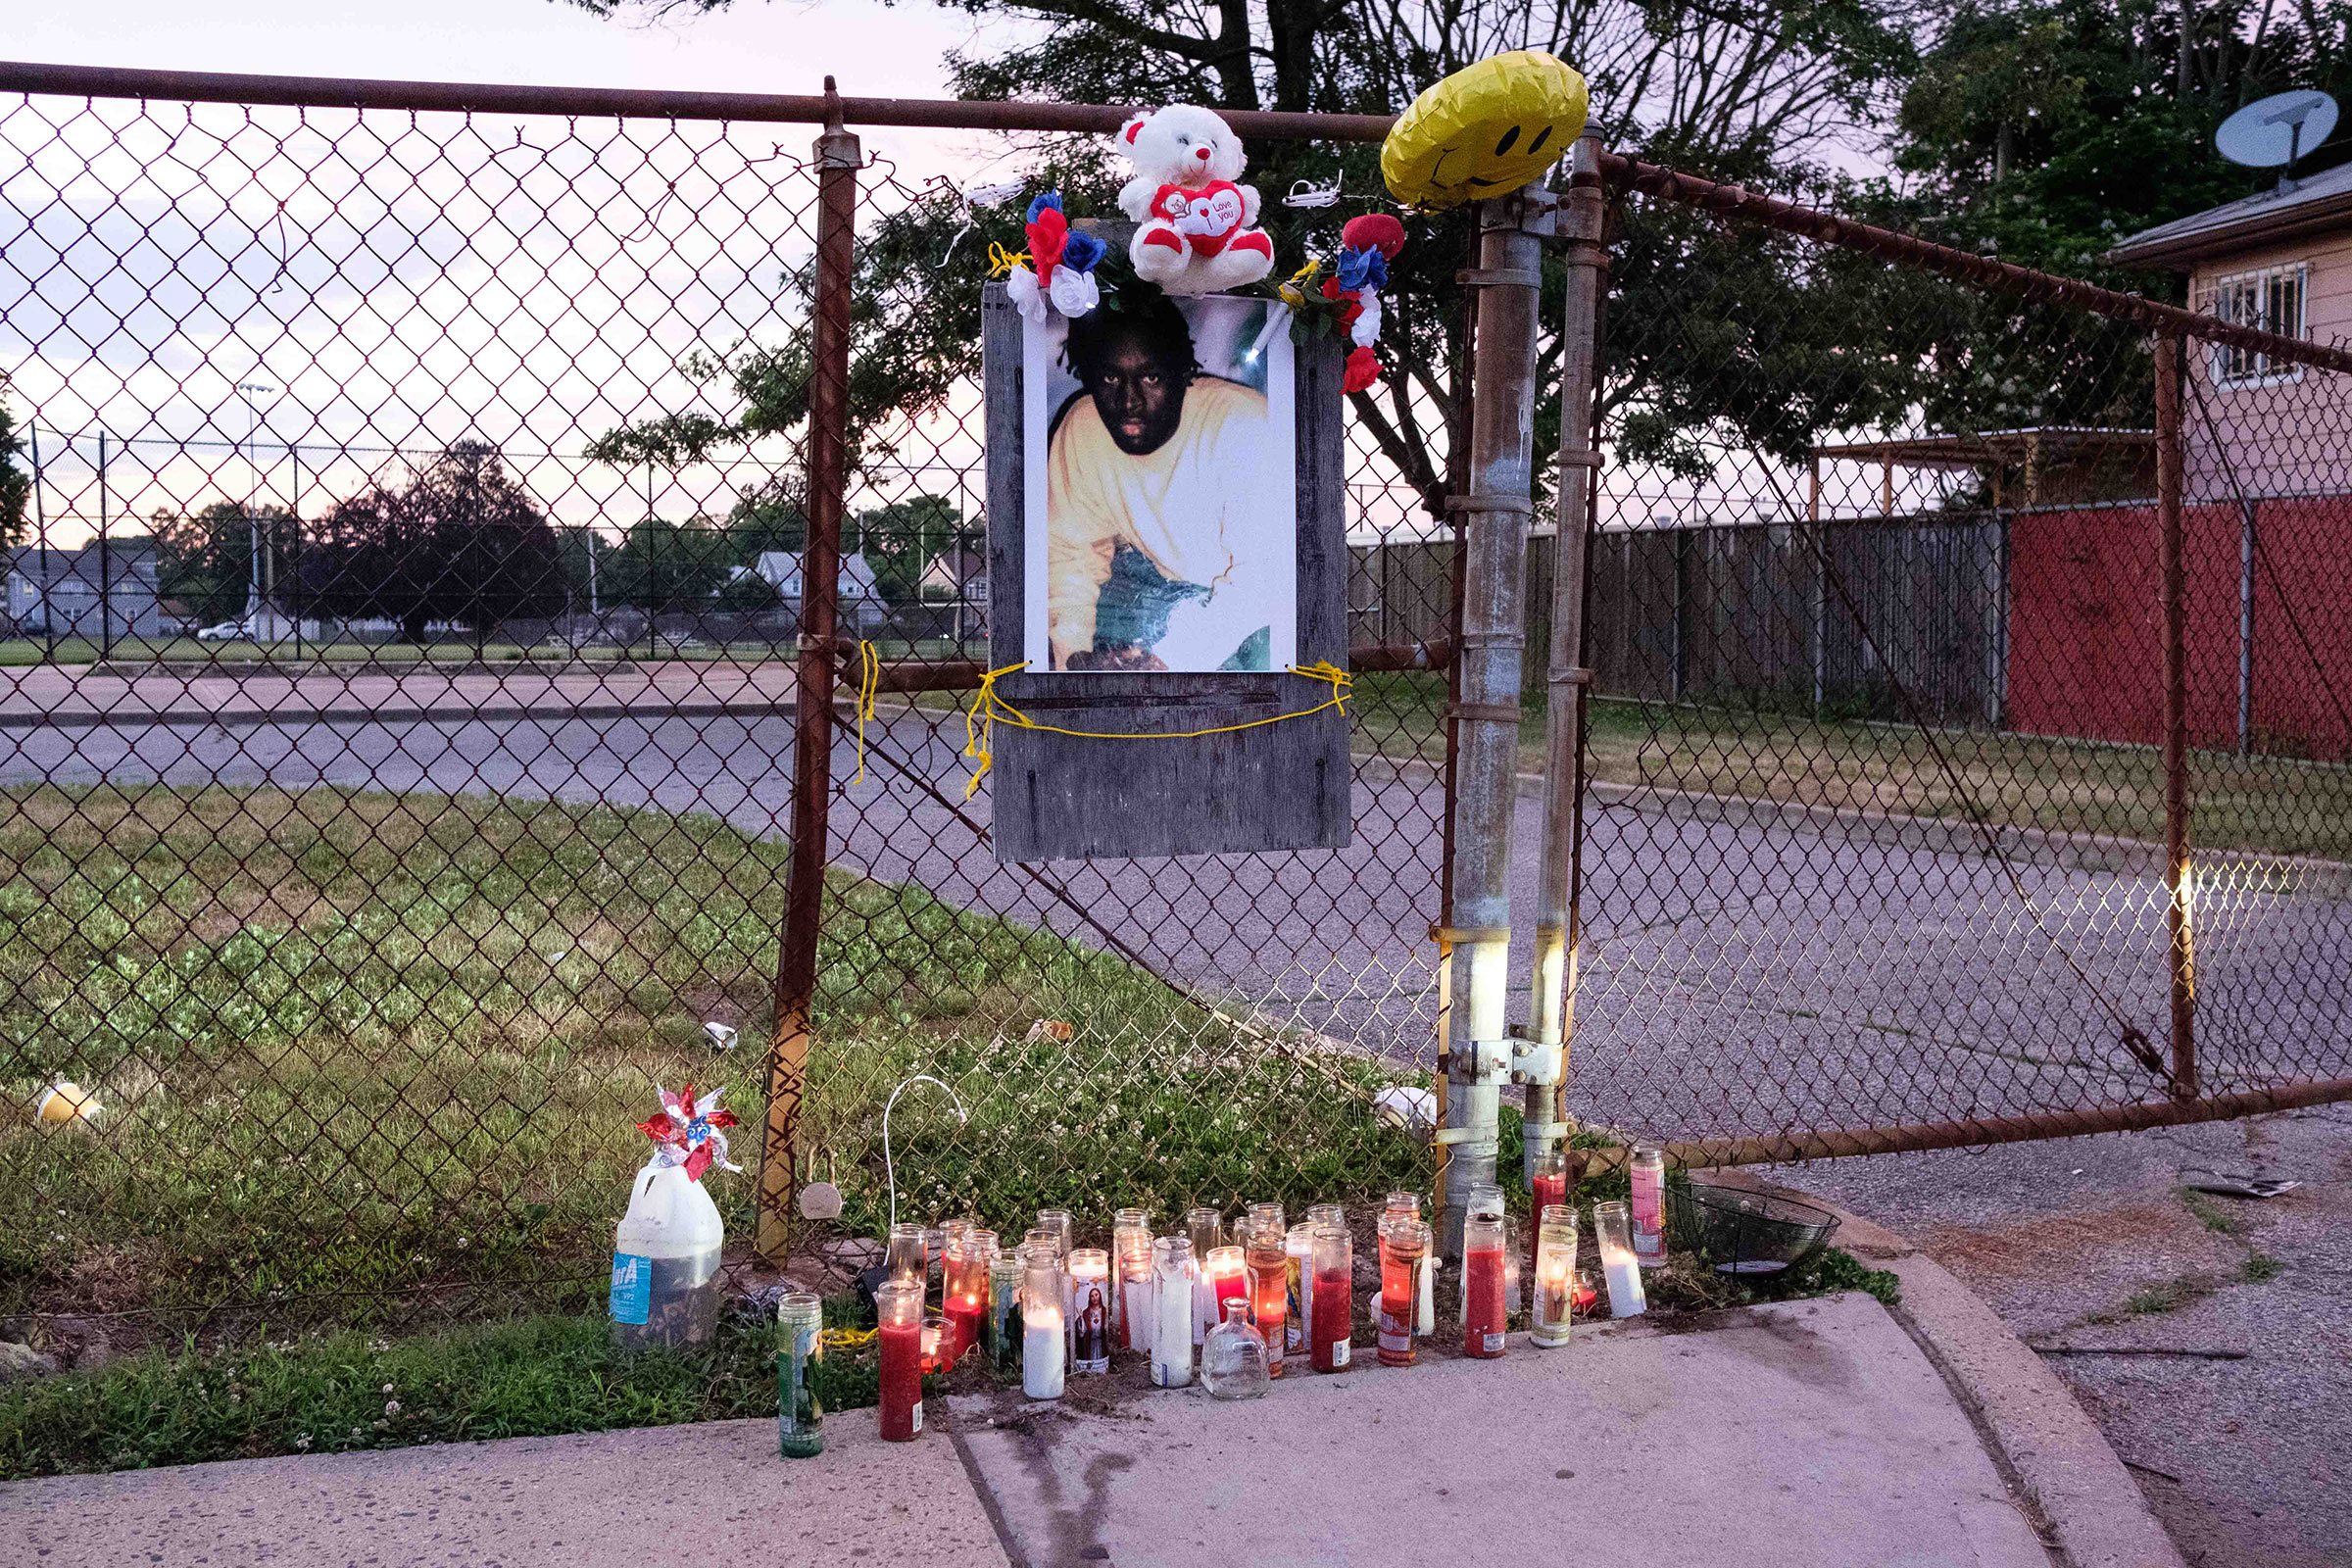 A memorial, in honor of Jamel Floyd, is placed at Kennedy Memorial Park in Hempstead, N.Y., where Jamel grew up playing baseball.